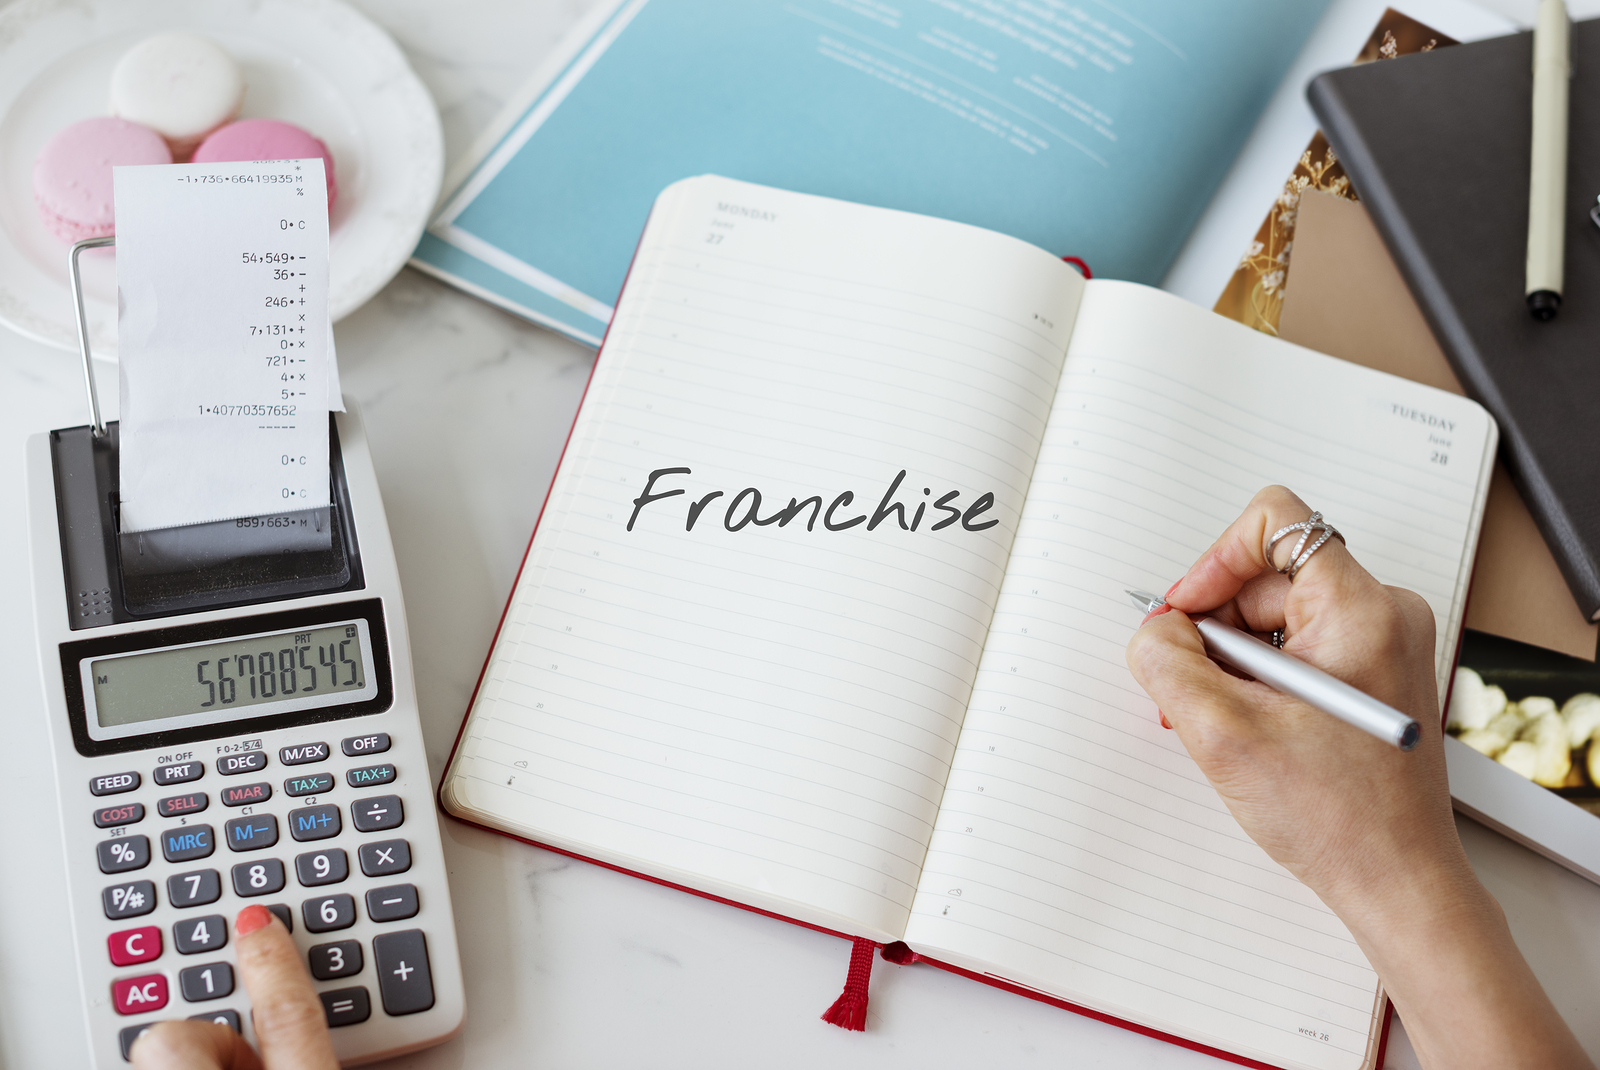 Should you really buy that franchise?